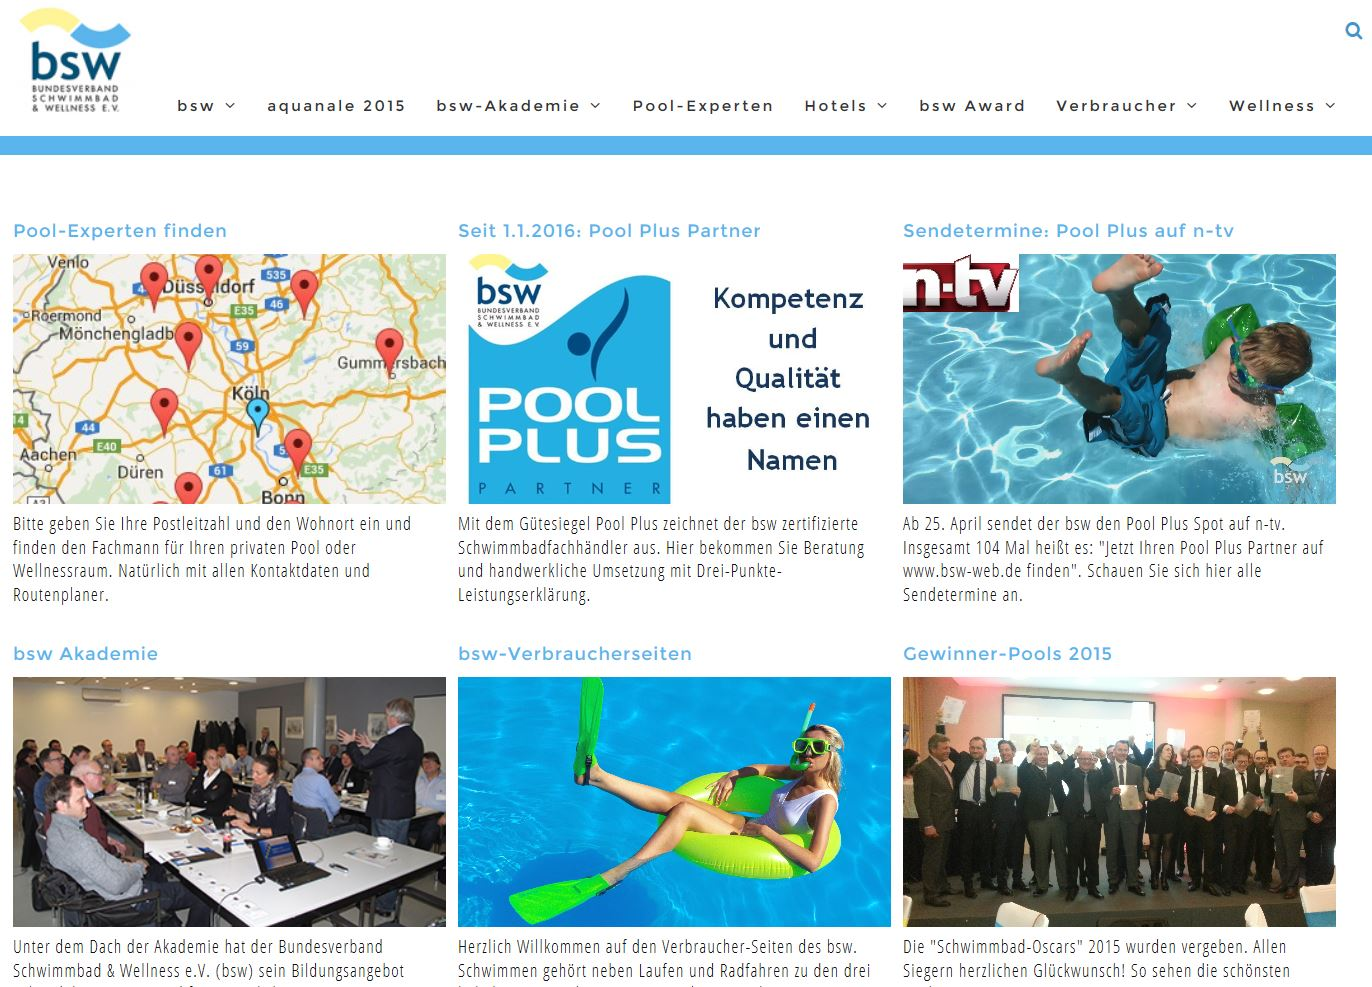 POOL PLUS PARTNER FINDEN